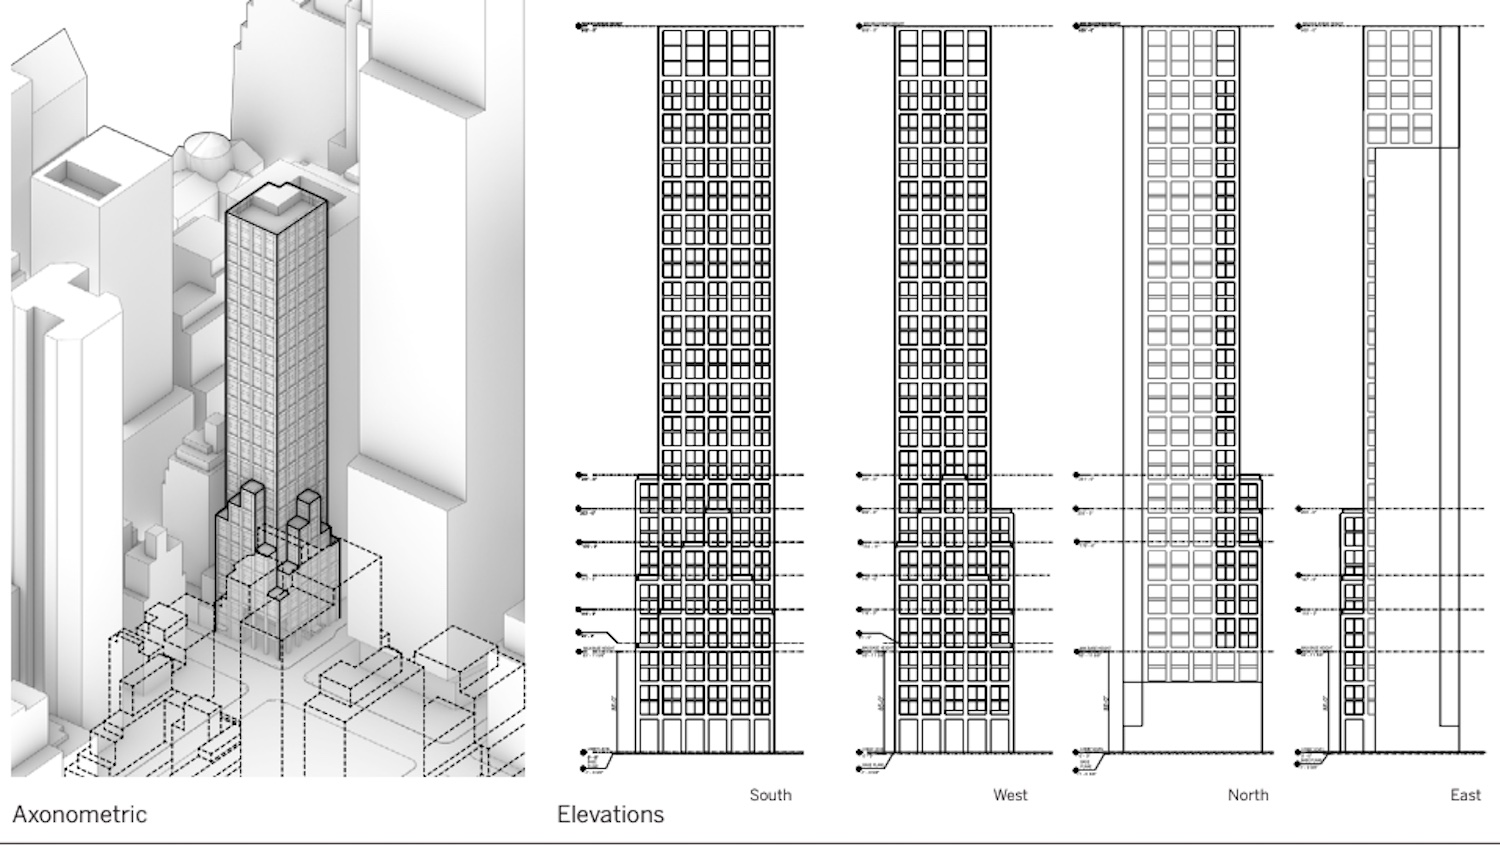 Proposed Project Elevations and Axonometric View of 415 Madison Avenue. Courtesy of SOM